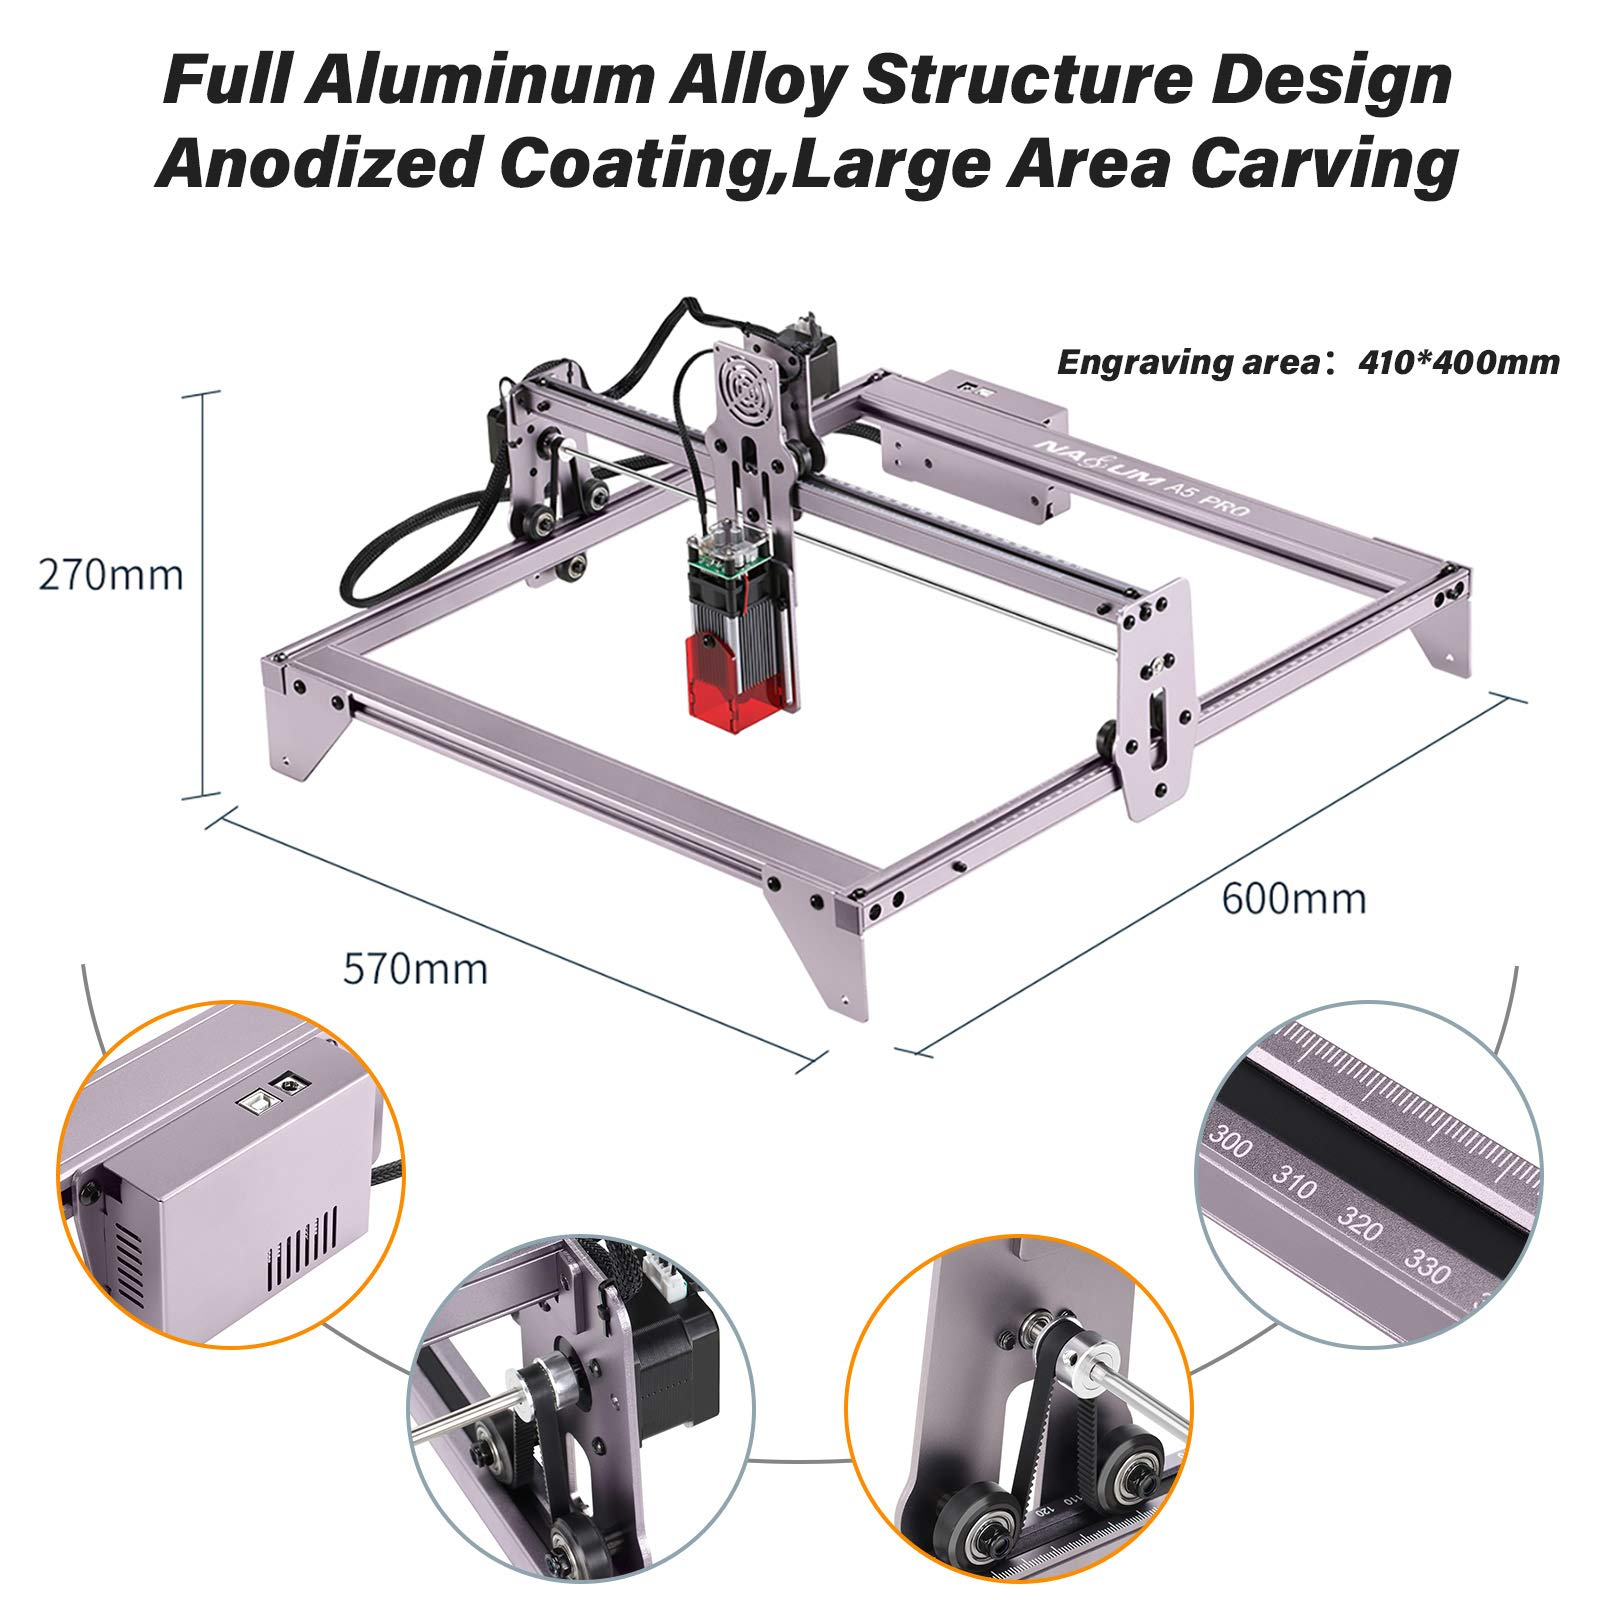 ATOMSTACK A5 PRO+ Roller Laser Engraving Machines Cutting Wood Stainless Steel Acrylic PVC R3 40w Air Cooling 5000mm/Min 12V 5A enlarge